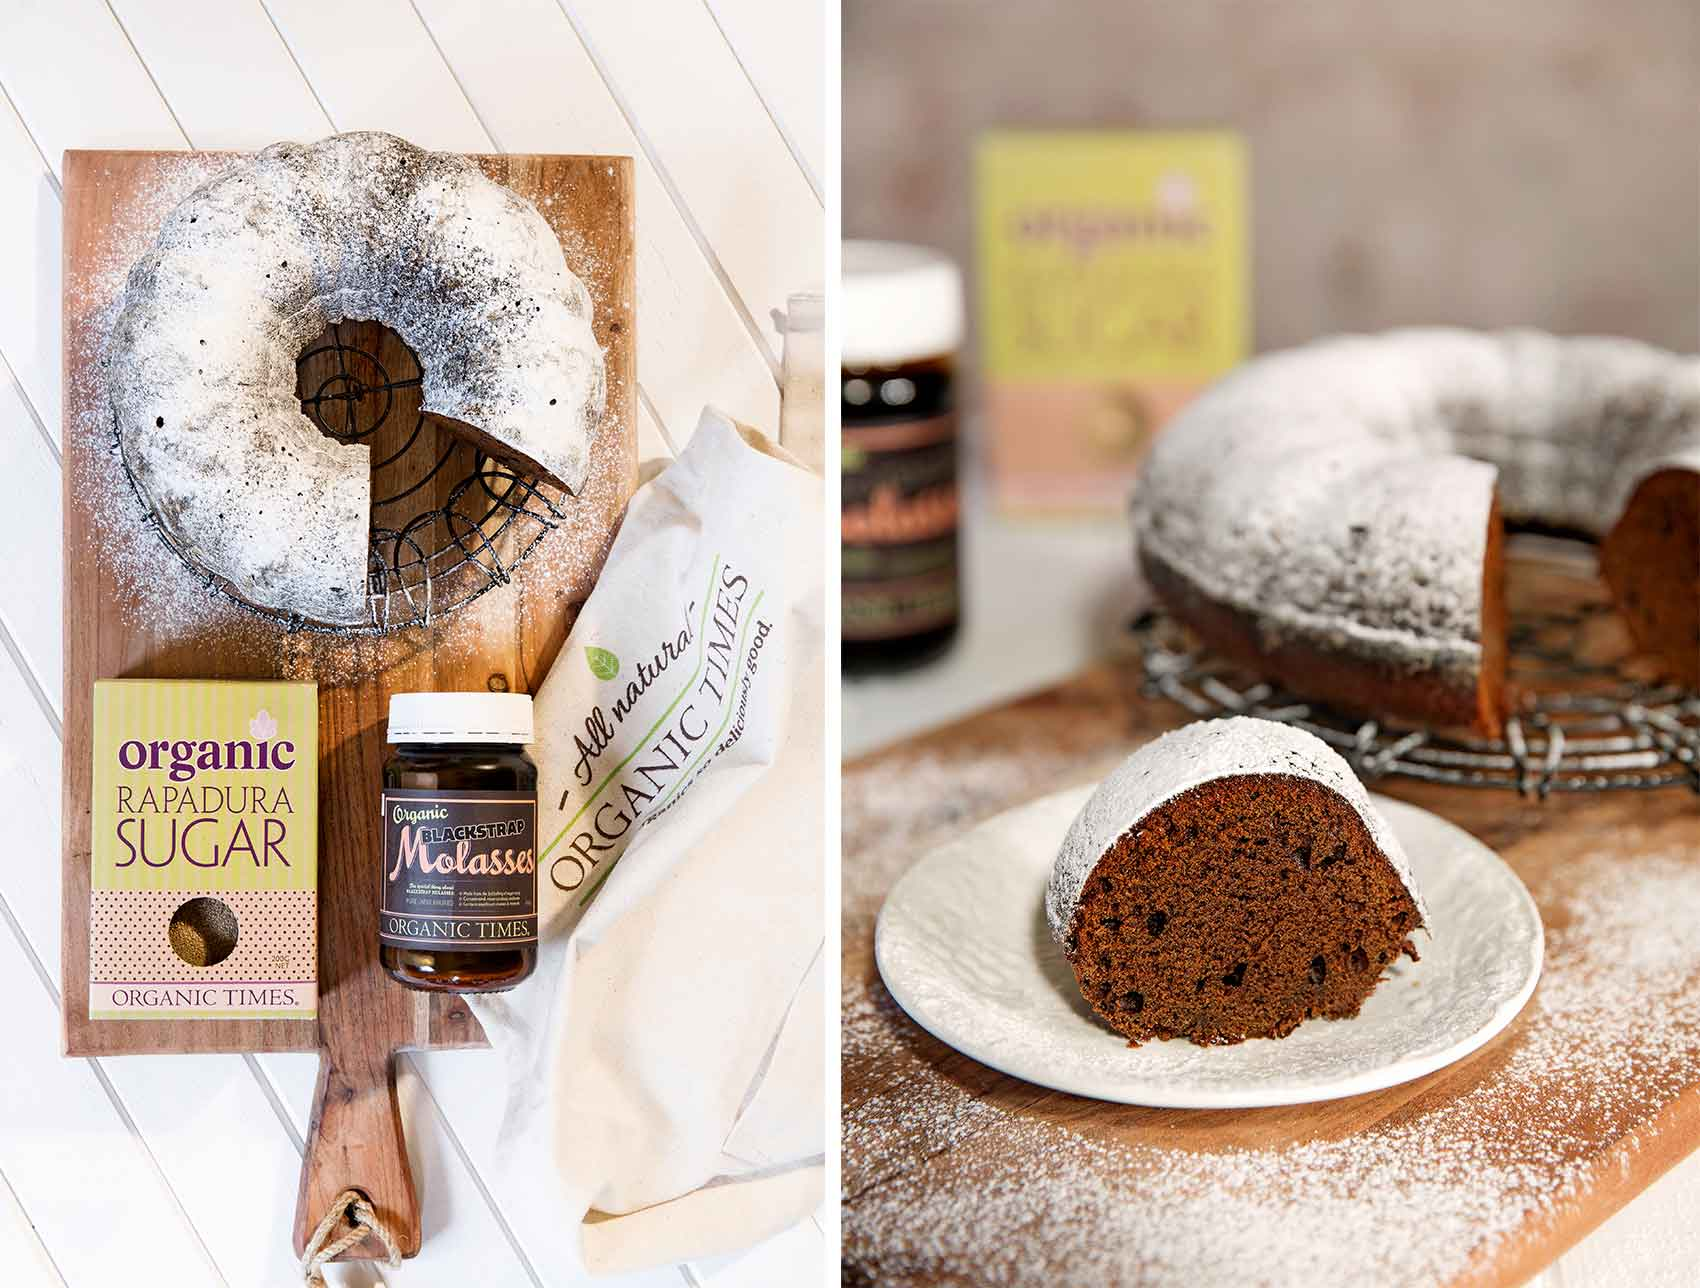 Gingerbread Cake slices with a jar of Organic Times Molasses and Rapadura Sugar